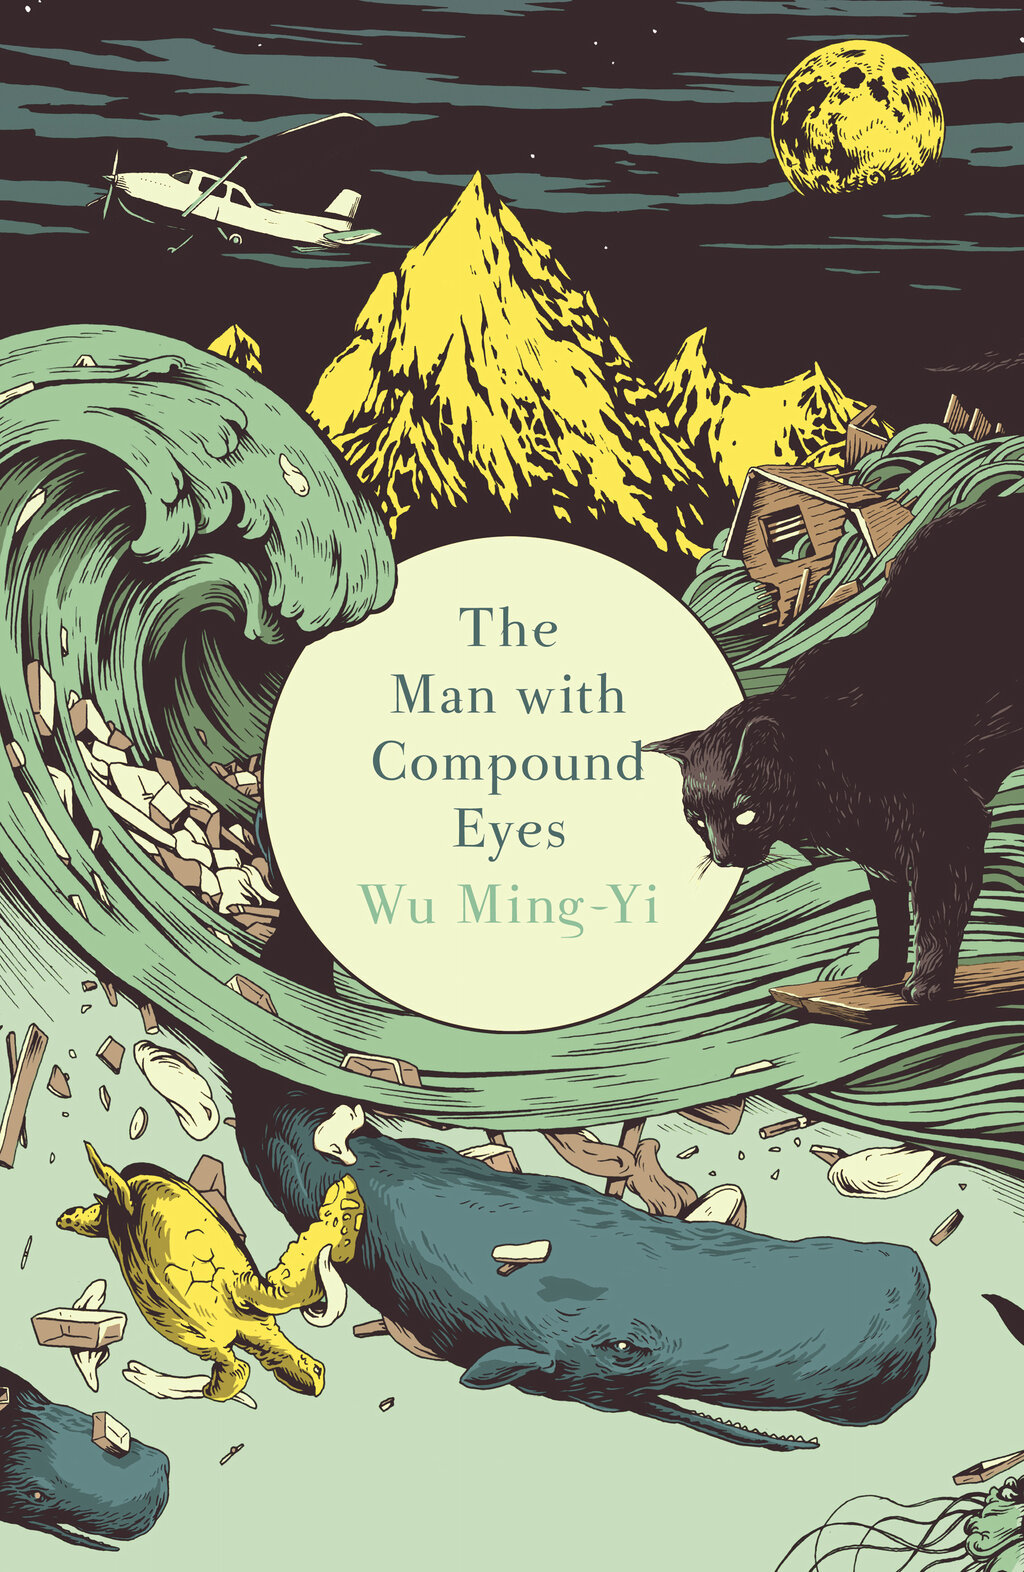 New book cover for Ming-Yi Wu's 'The Man with Compound Eyes' Available to Pre-Order now at www.waterstones.com